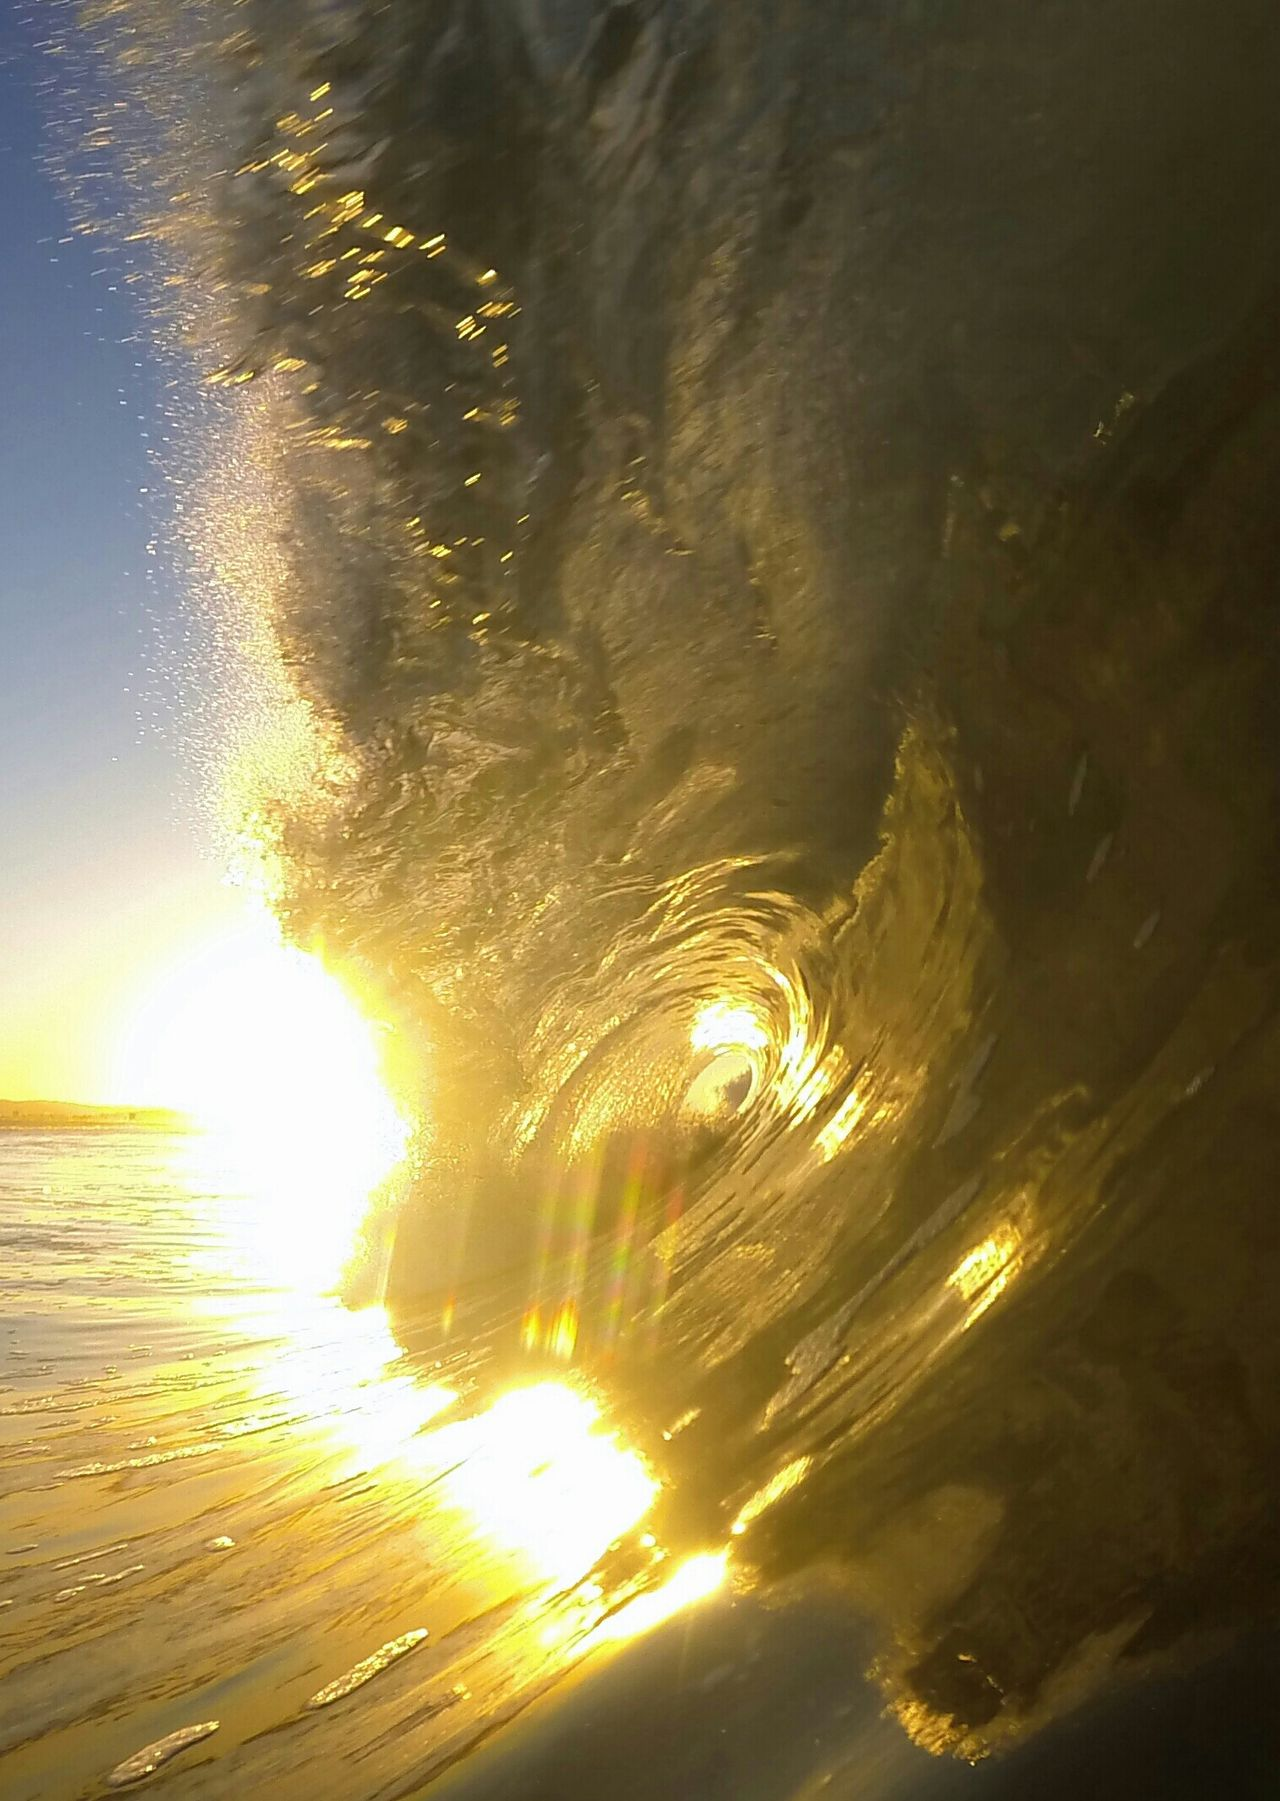 1/24/15 Toobsday Barrelsforbreakfast Water And Light Wave Cave Water_collection Eat Sleep Surf Sunrise Being A Beach Bum Surf Photography EyeEm_crew